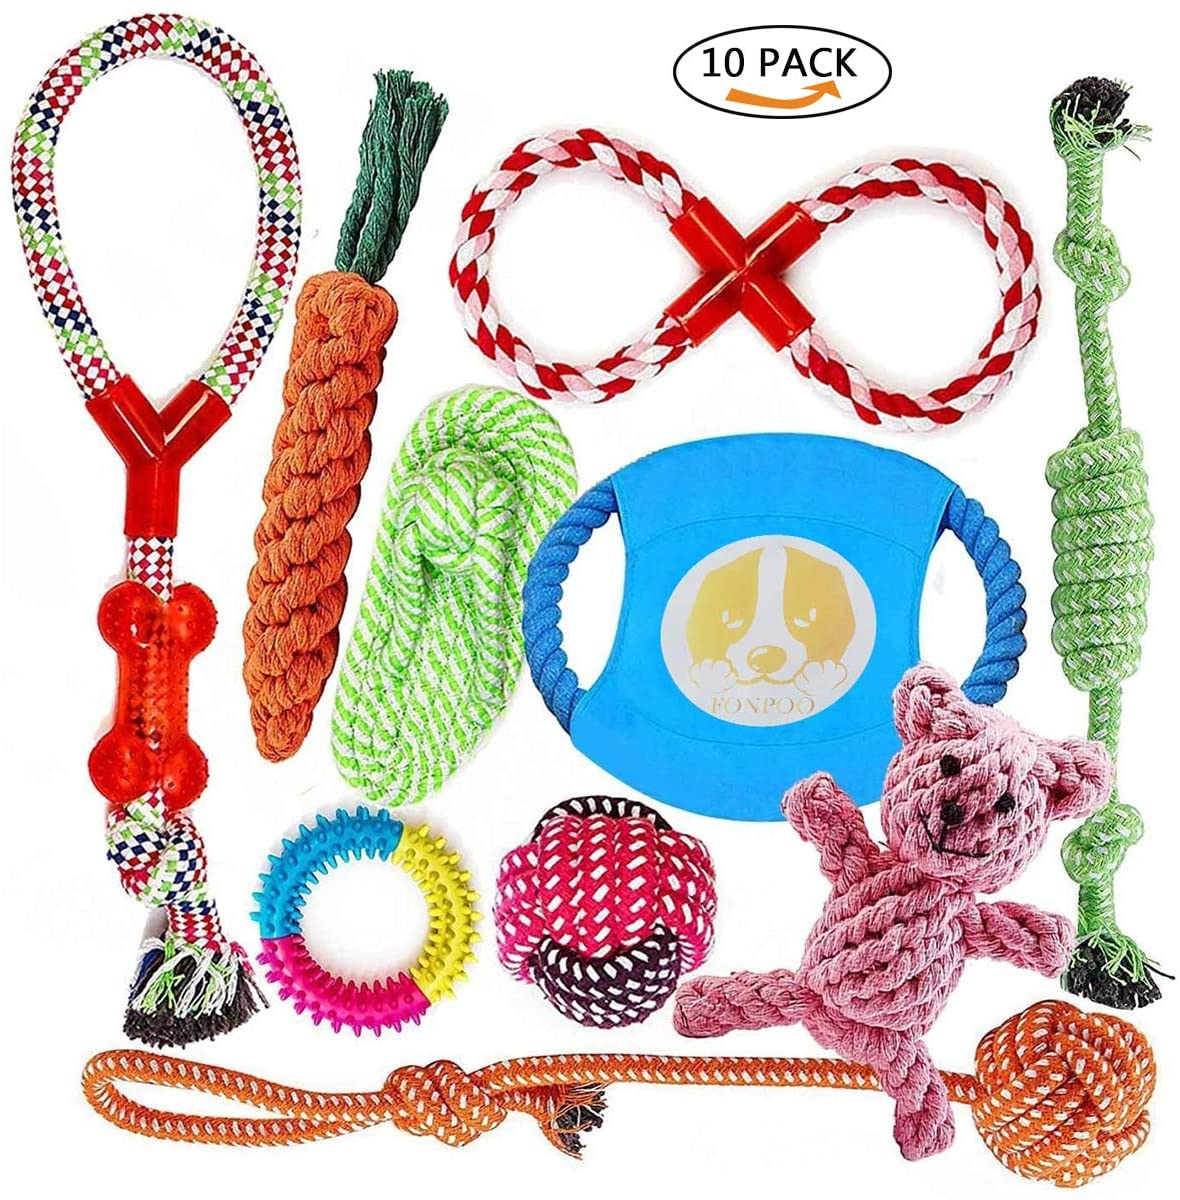 Angelland Dog Rope Toy Chew Toys Teething Puppy Small Dog Teeth Cleaning Tug Toy Rubber Bone Durable Dogs Toy Gift Sets